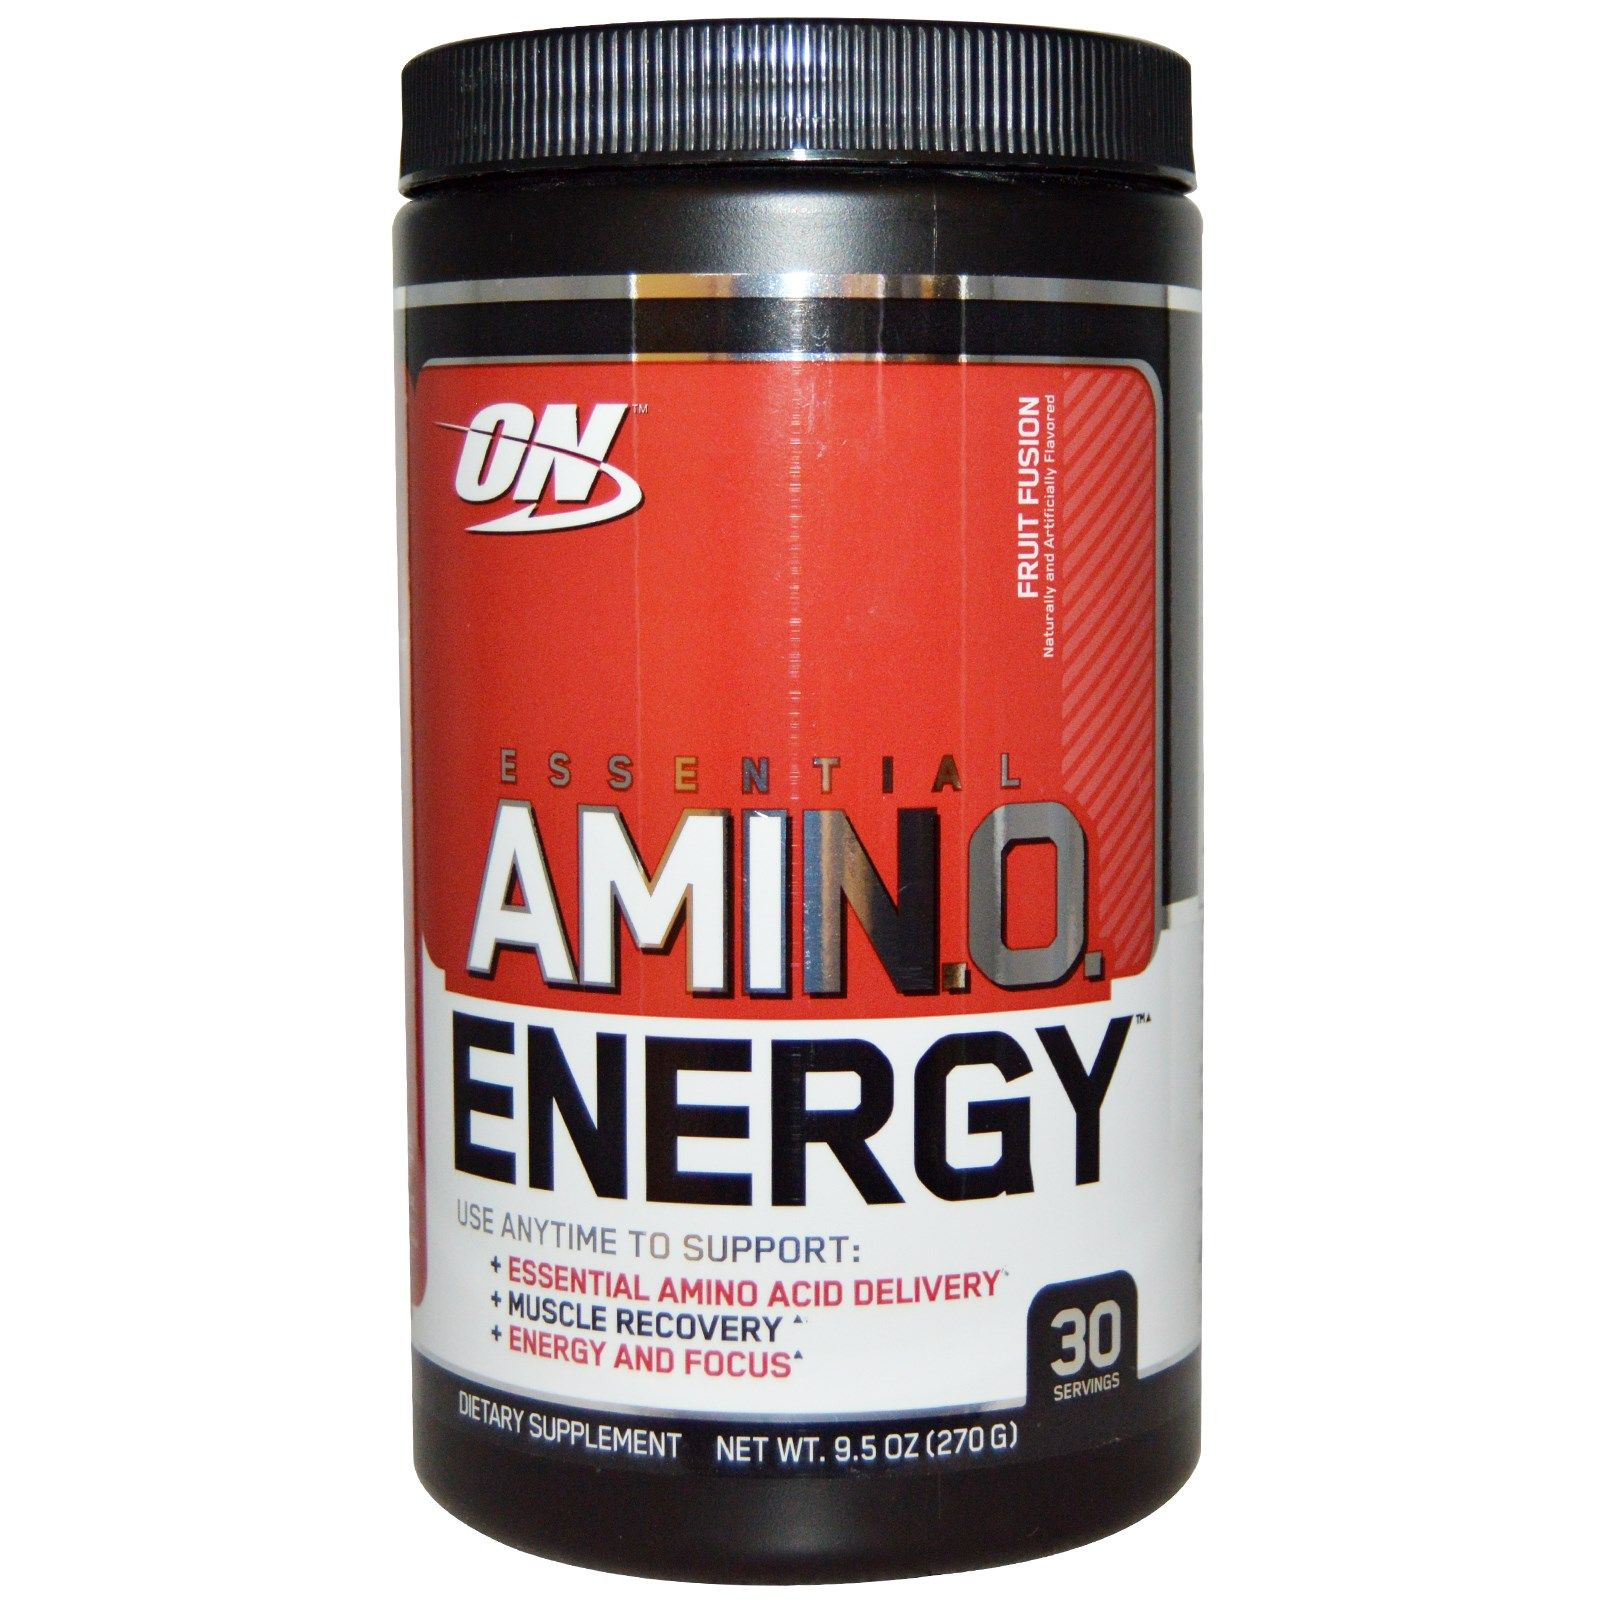 Aminokyseliny Amino Energy 270 g - Optimum Nutrition - lemon lime